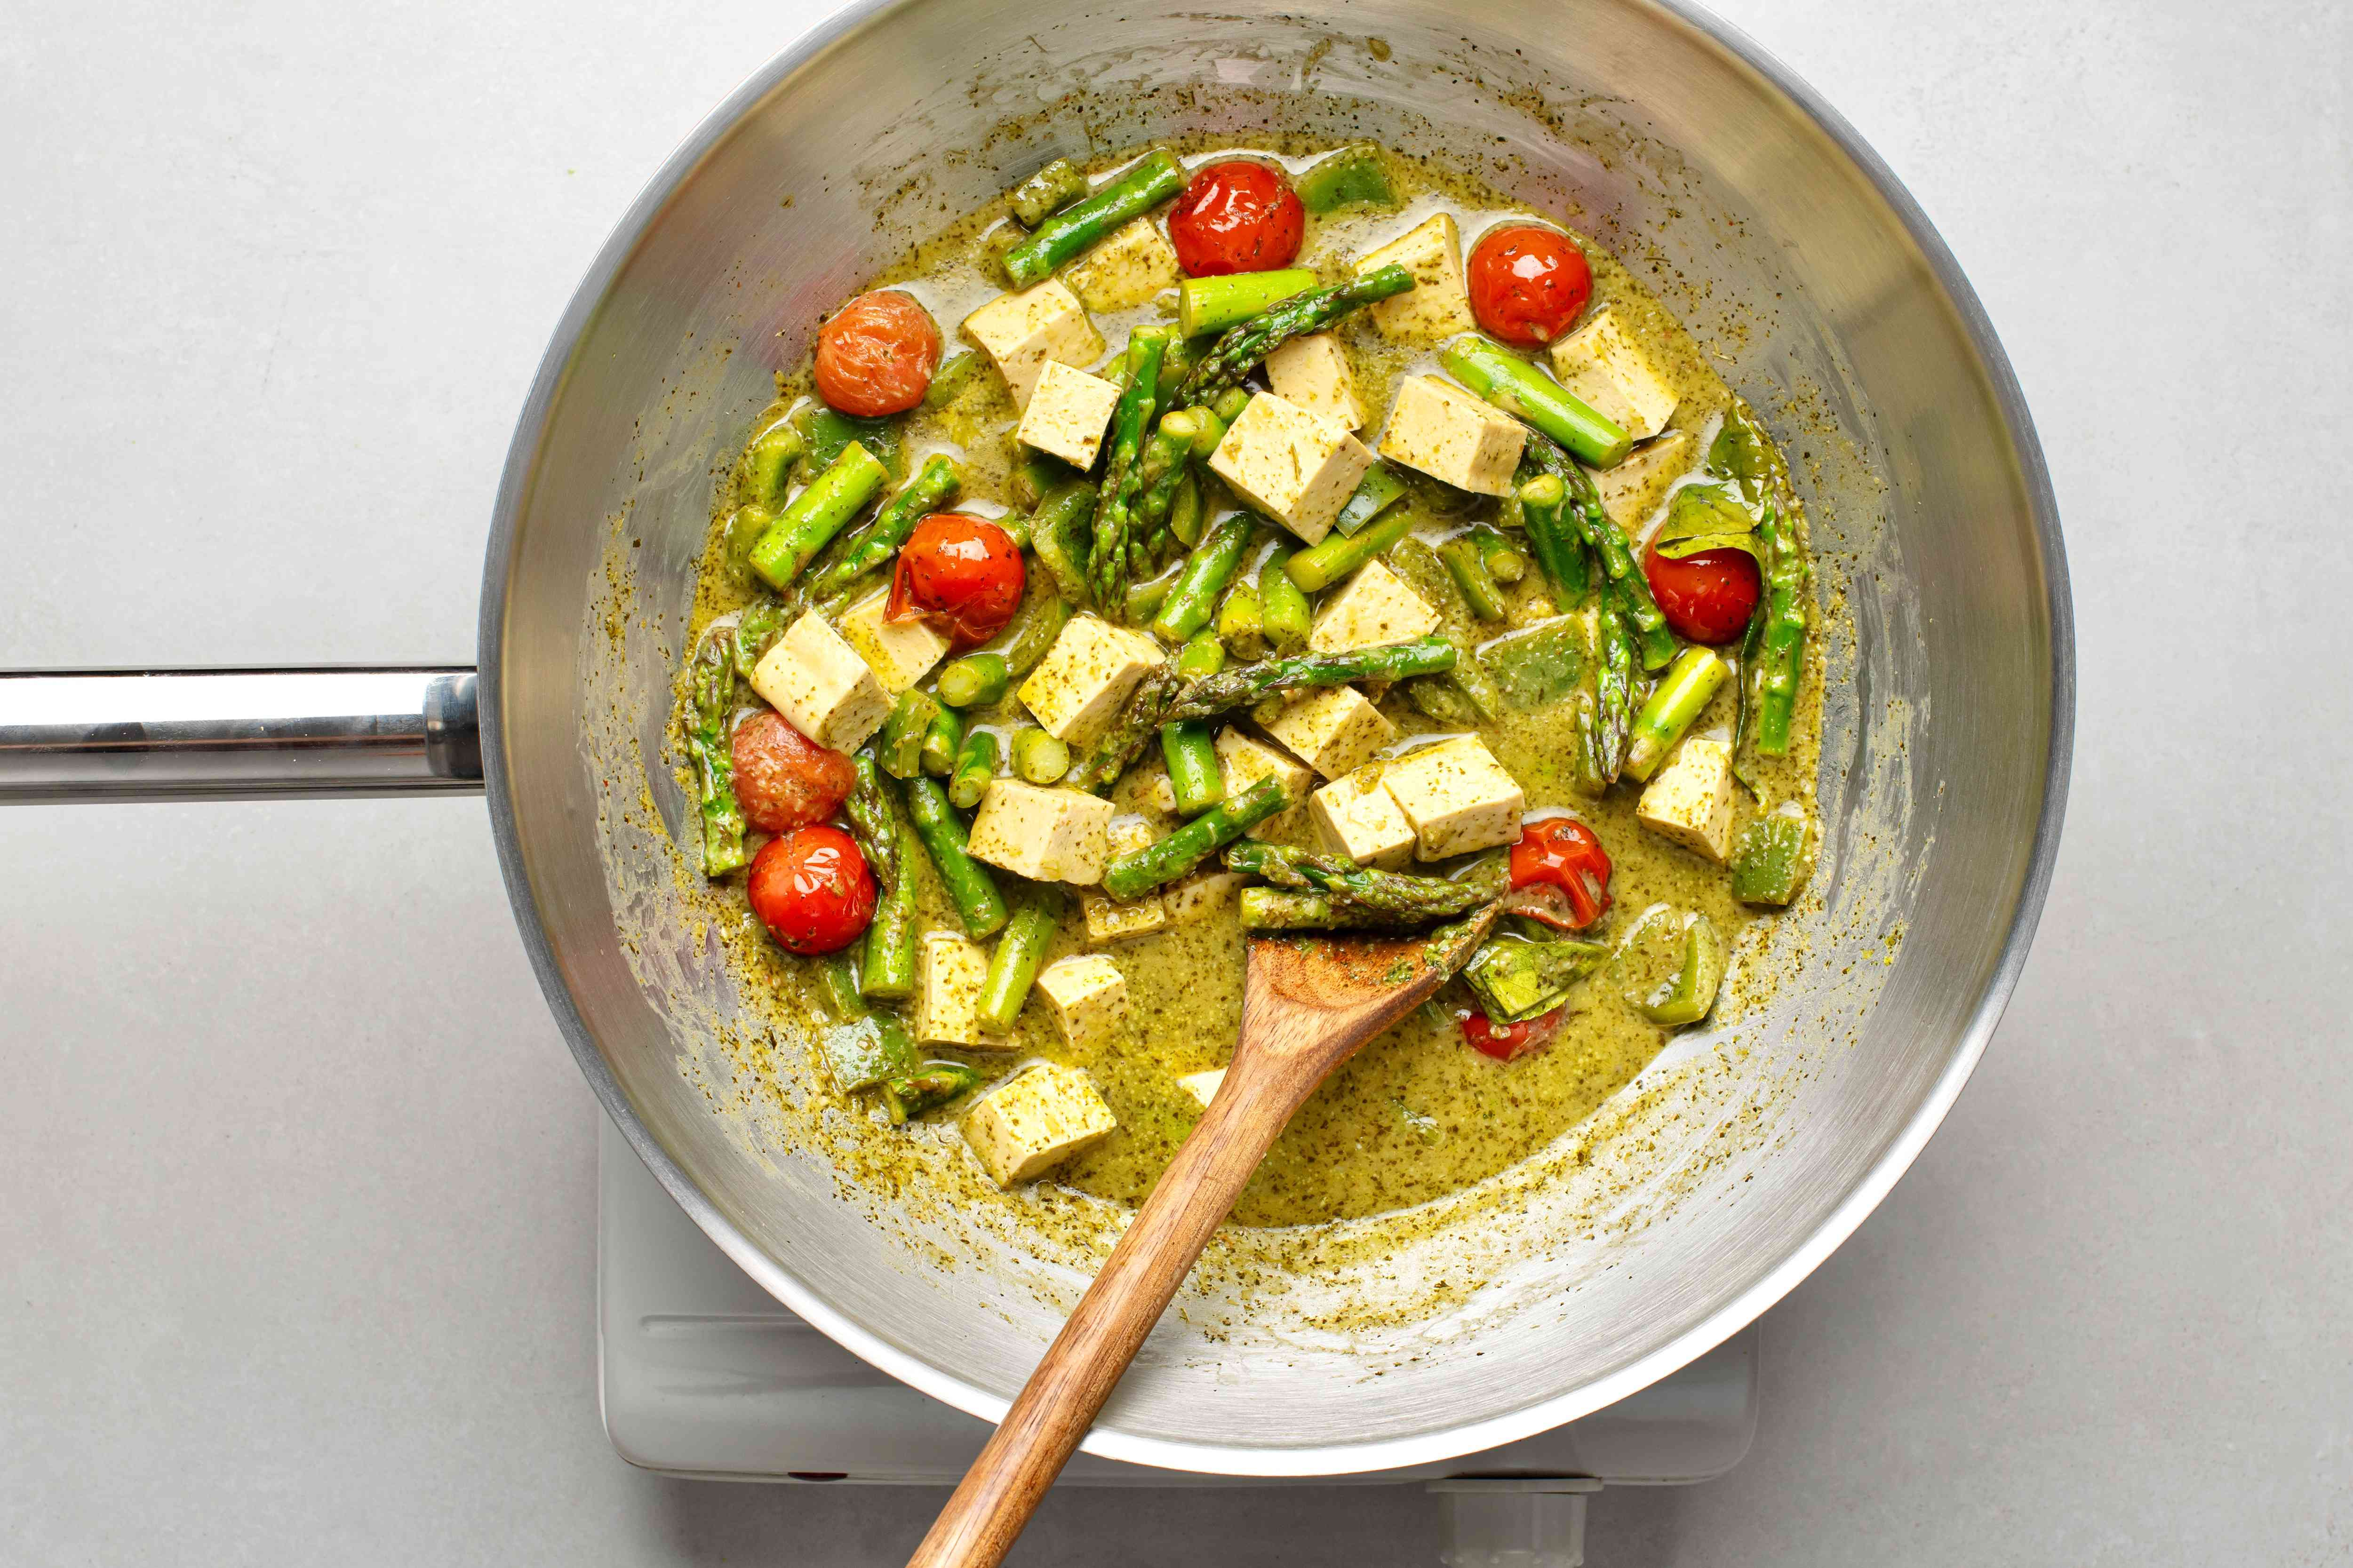 Green curry simmering with coconut milk and veggies added